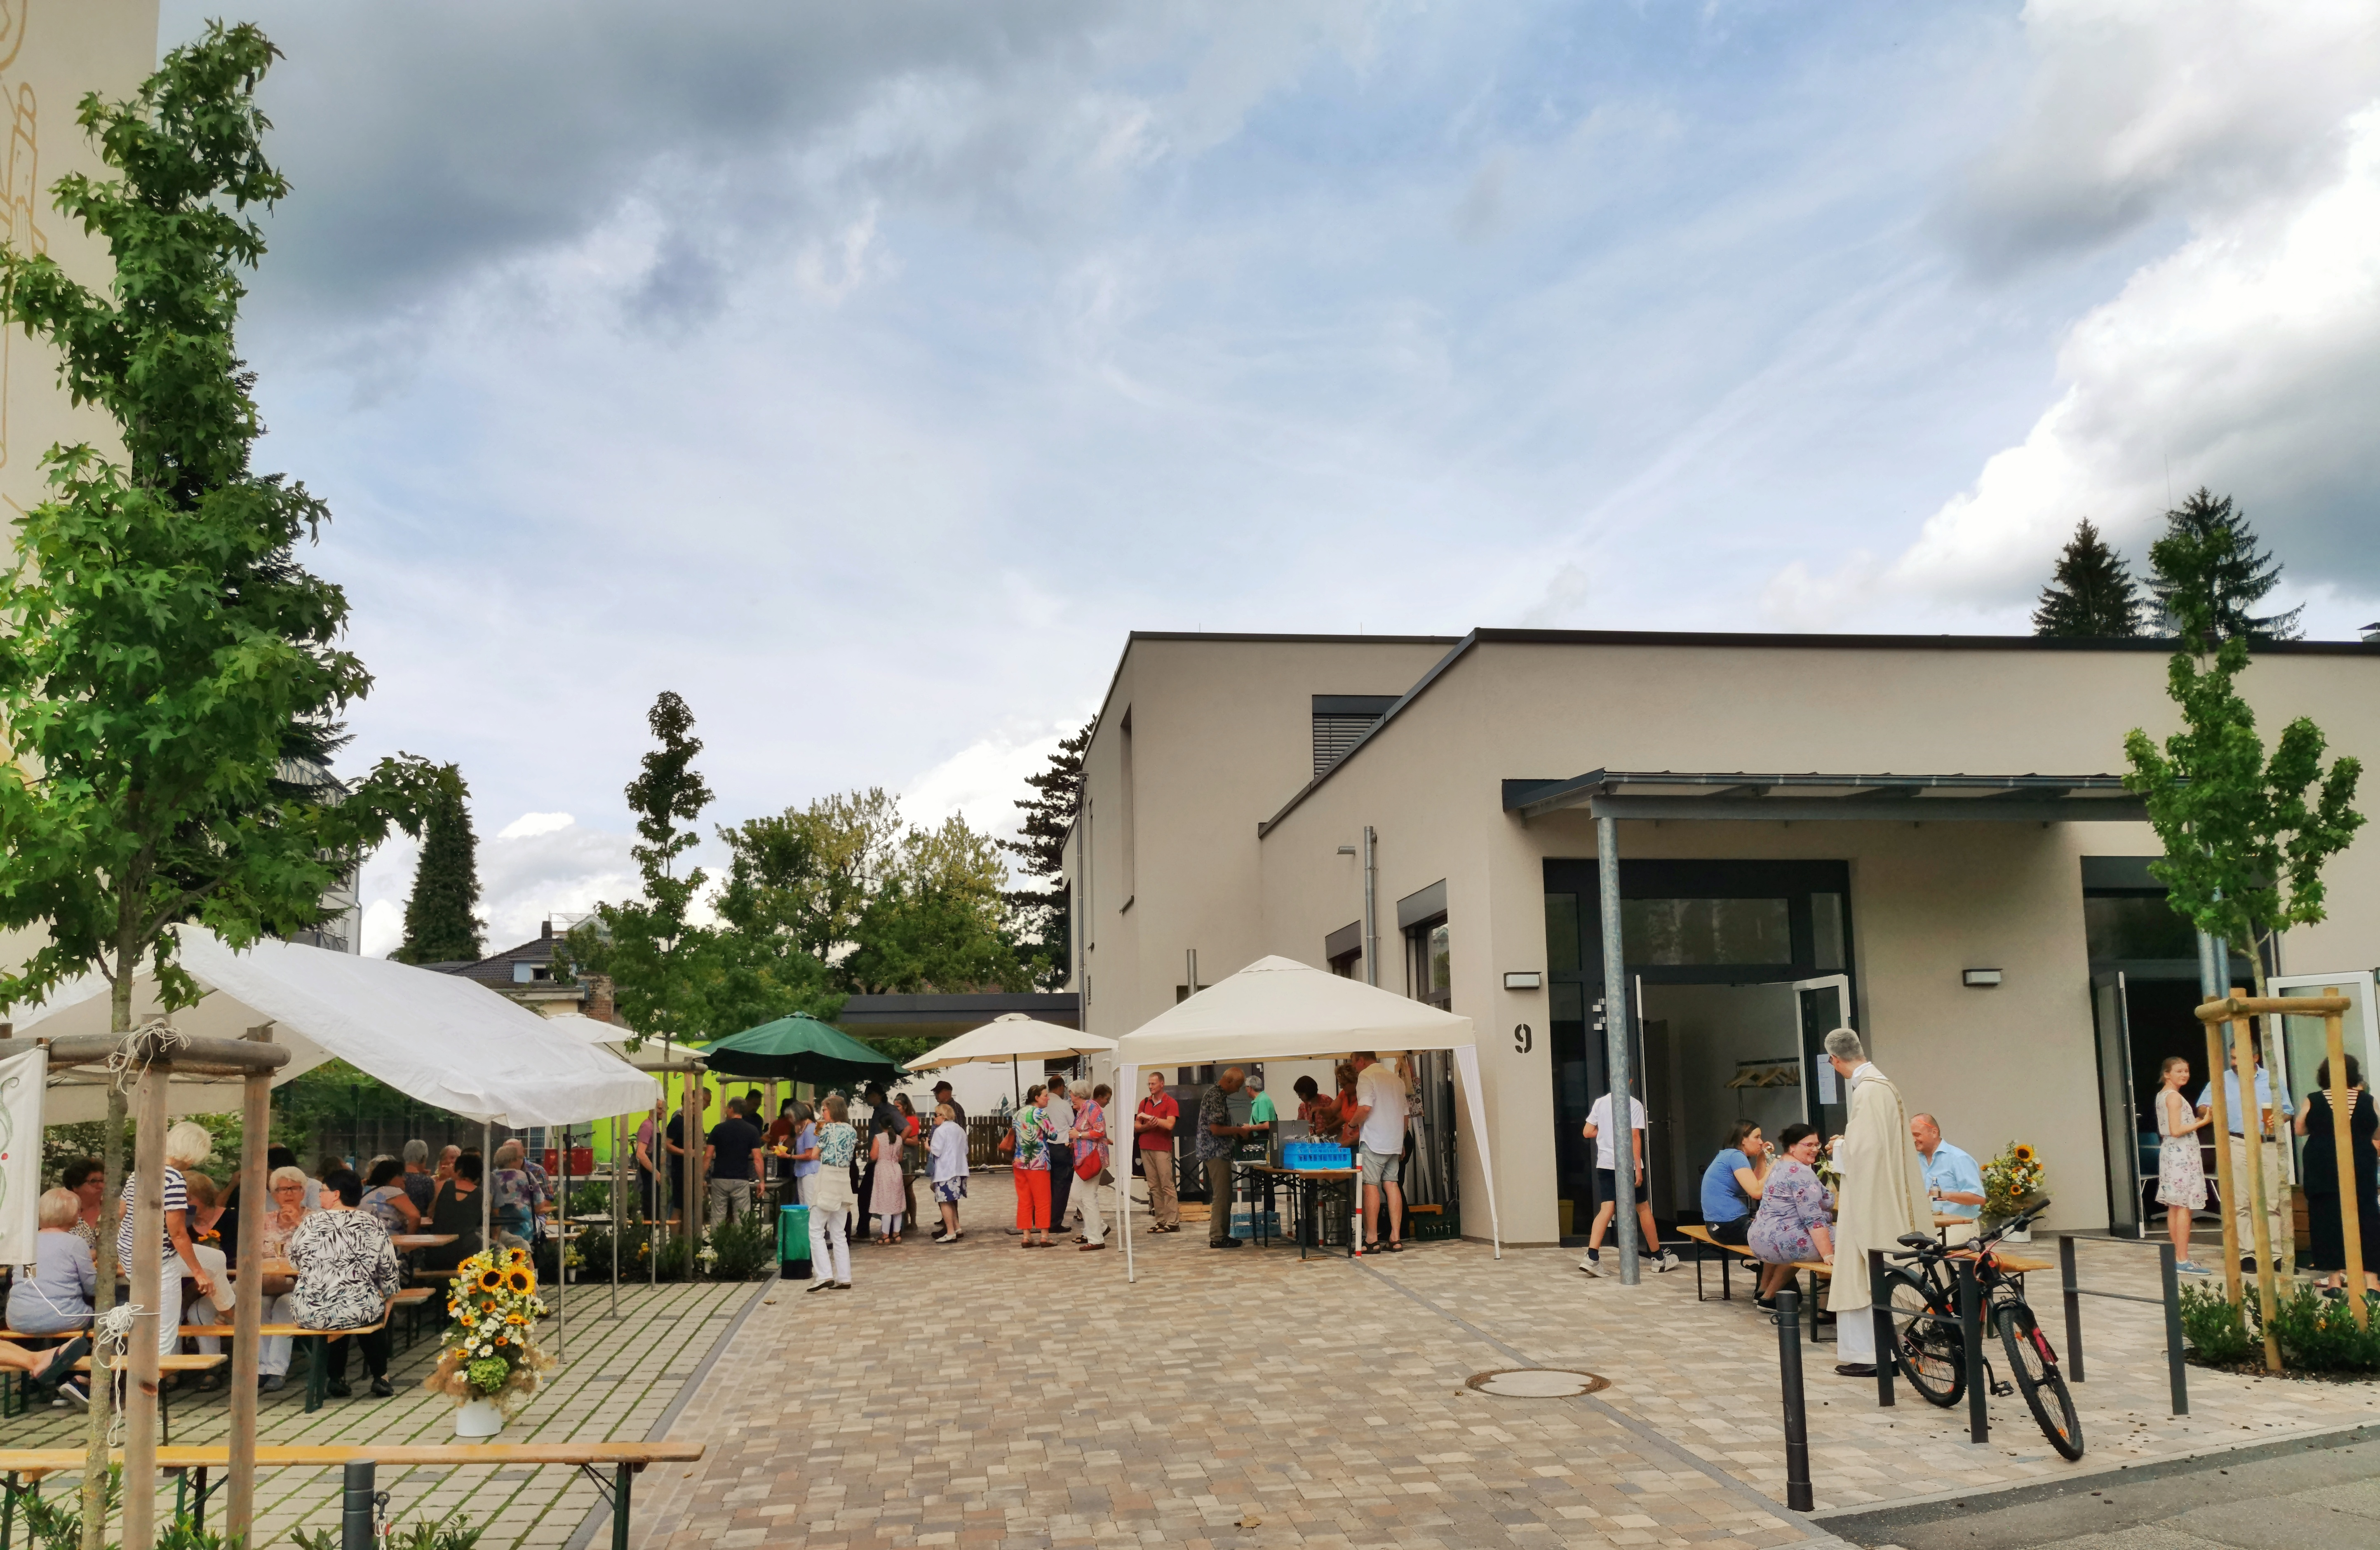 21.07.2019 – Inauguration of the Gemeindehaus St. Bernhard, Baden-Baden